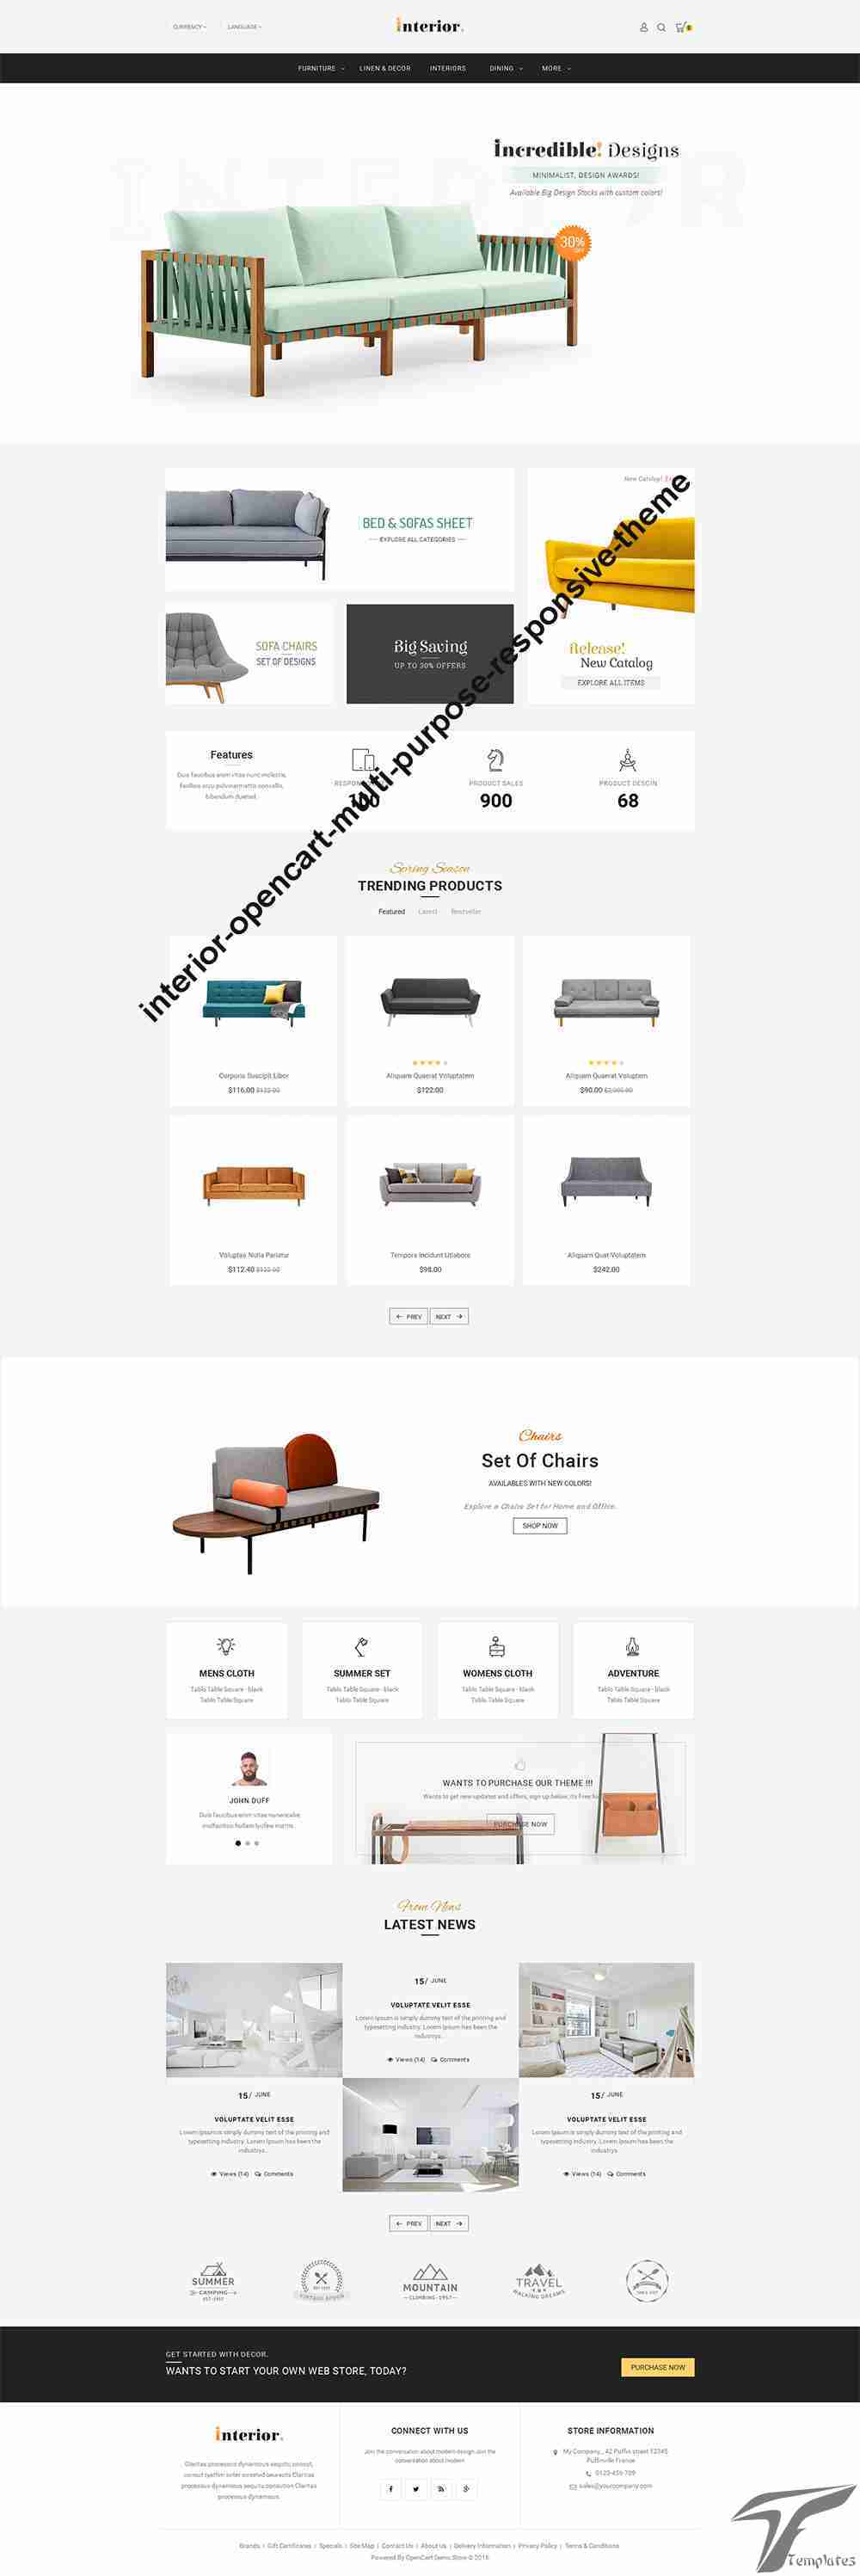 https://images.besthemes.com/images/h1_interior-opencart-multi-purpose-responsive-theme9-_-196005198/08.Sofa-Store.jpg